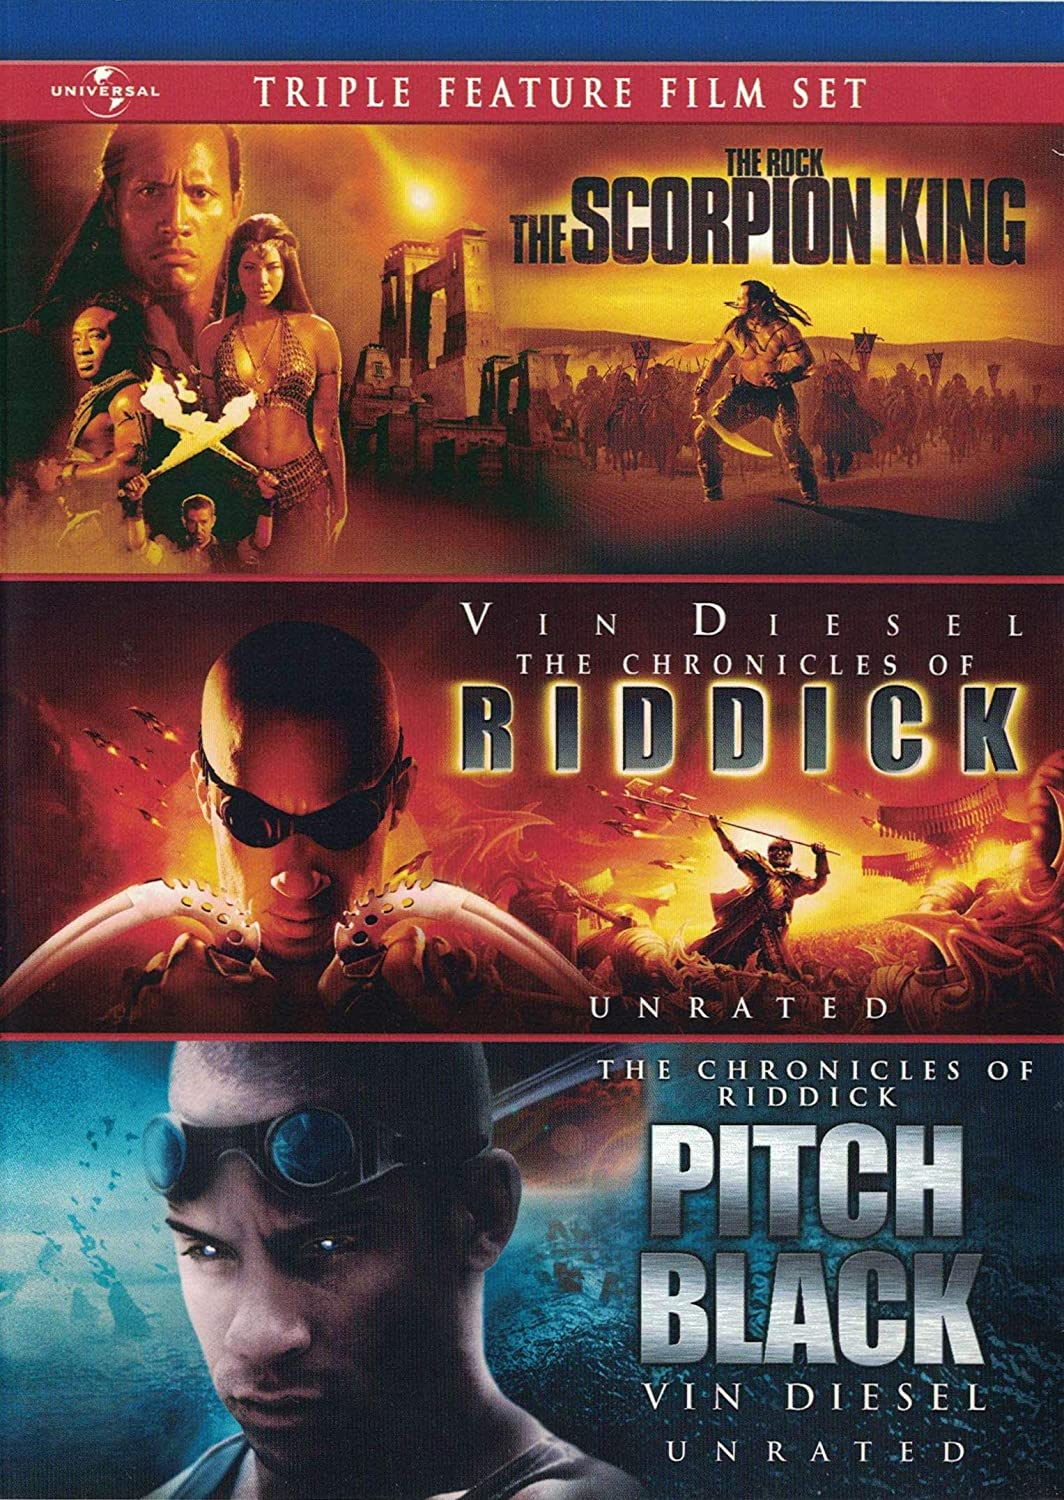 Amazon.com: Triple Feature Film Set - The Scorpion King - The Chronicles of  Riddick - Pitch Black - DVD: The Rock, Vin Diesel: Movies & TV